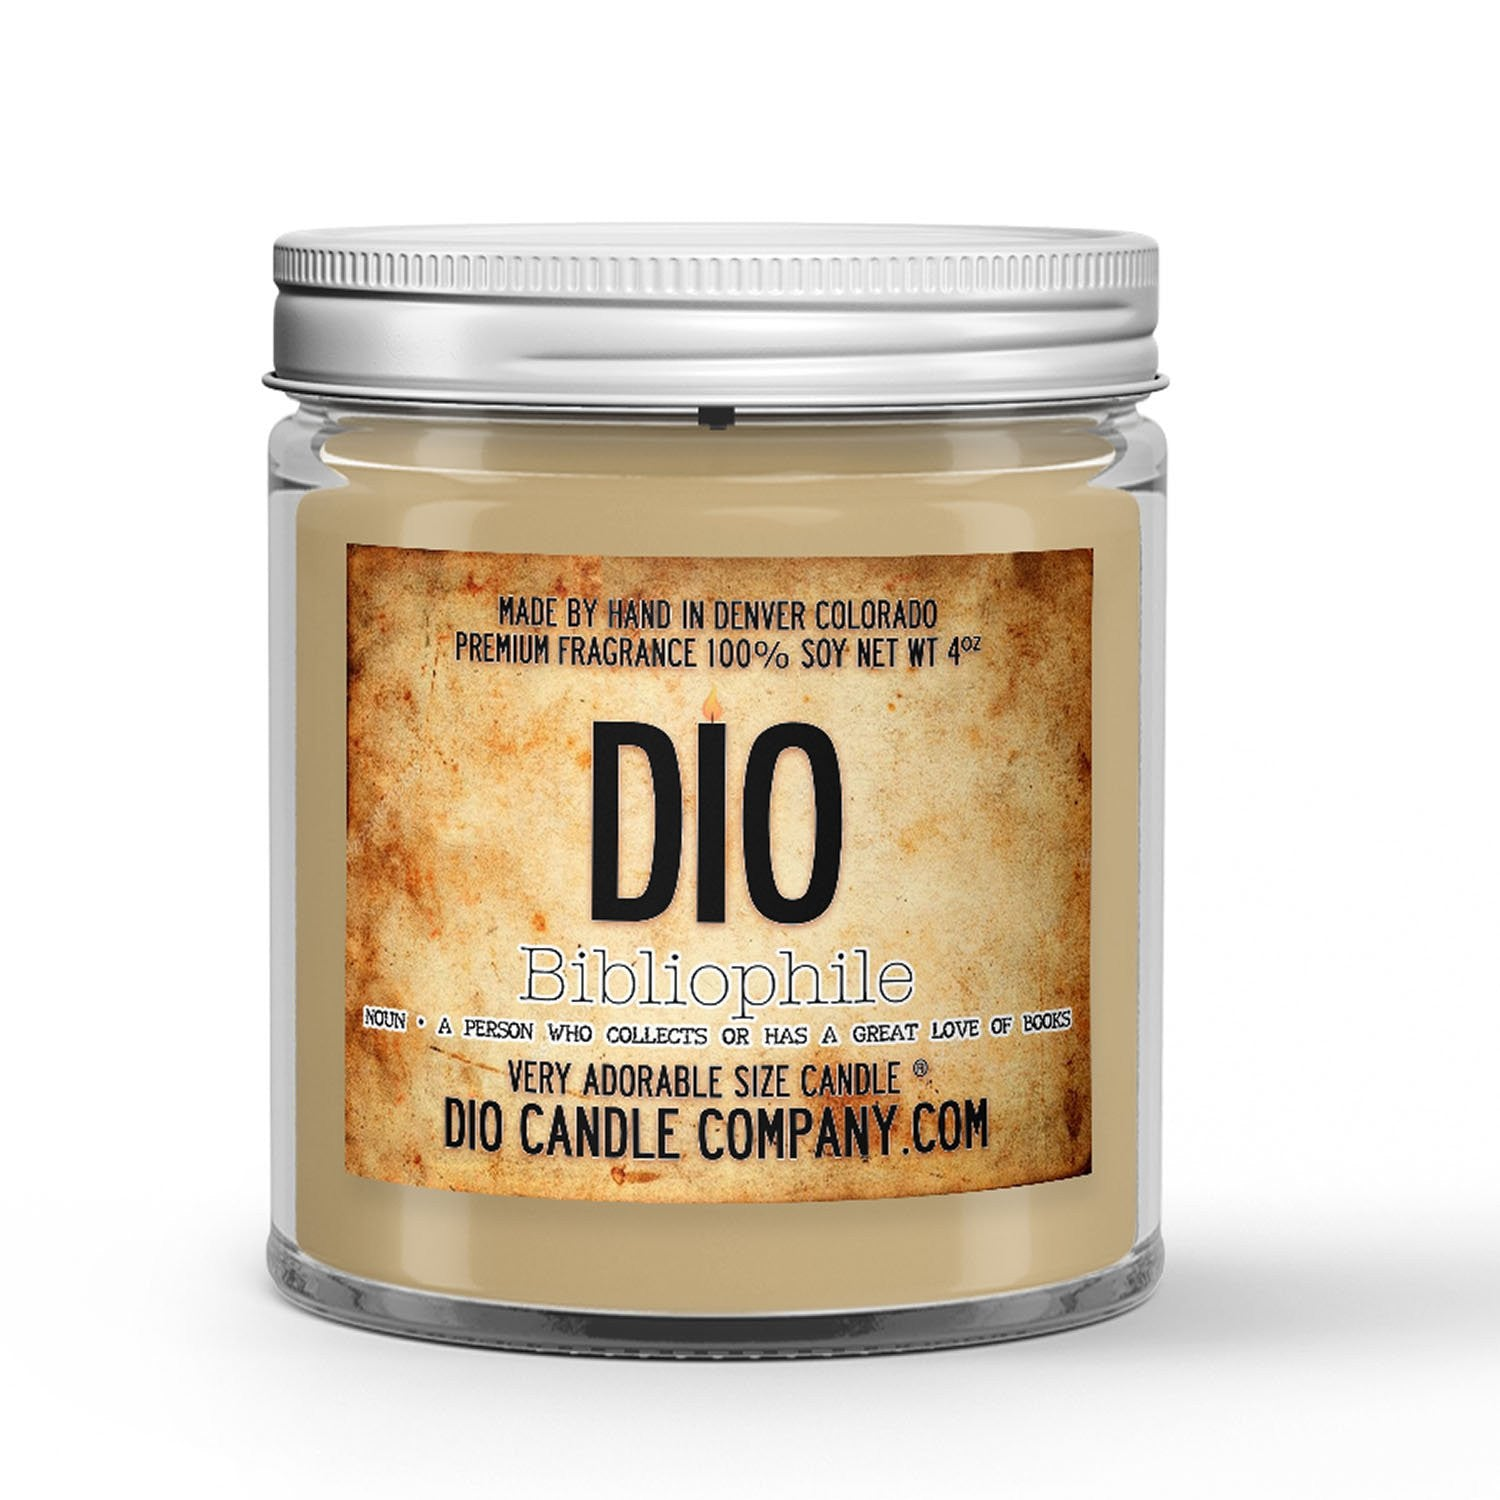 Bibliophile Candle - Parchment - Lemon - Saw Dust - Dried Ink - 4oz Very Adorable Size Candle® - Dio Candle Company